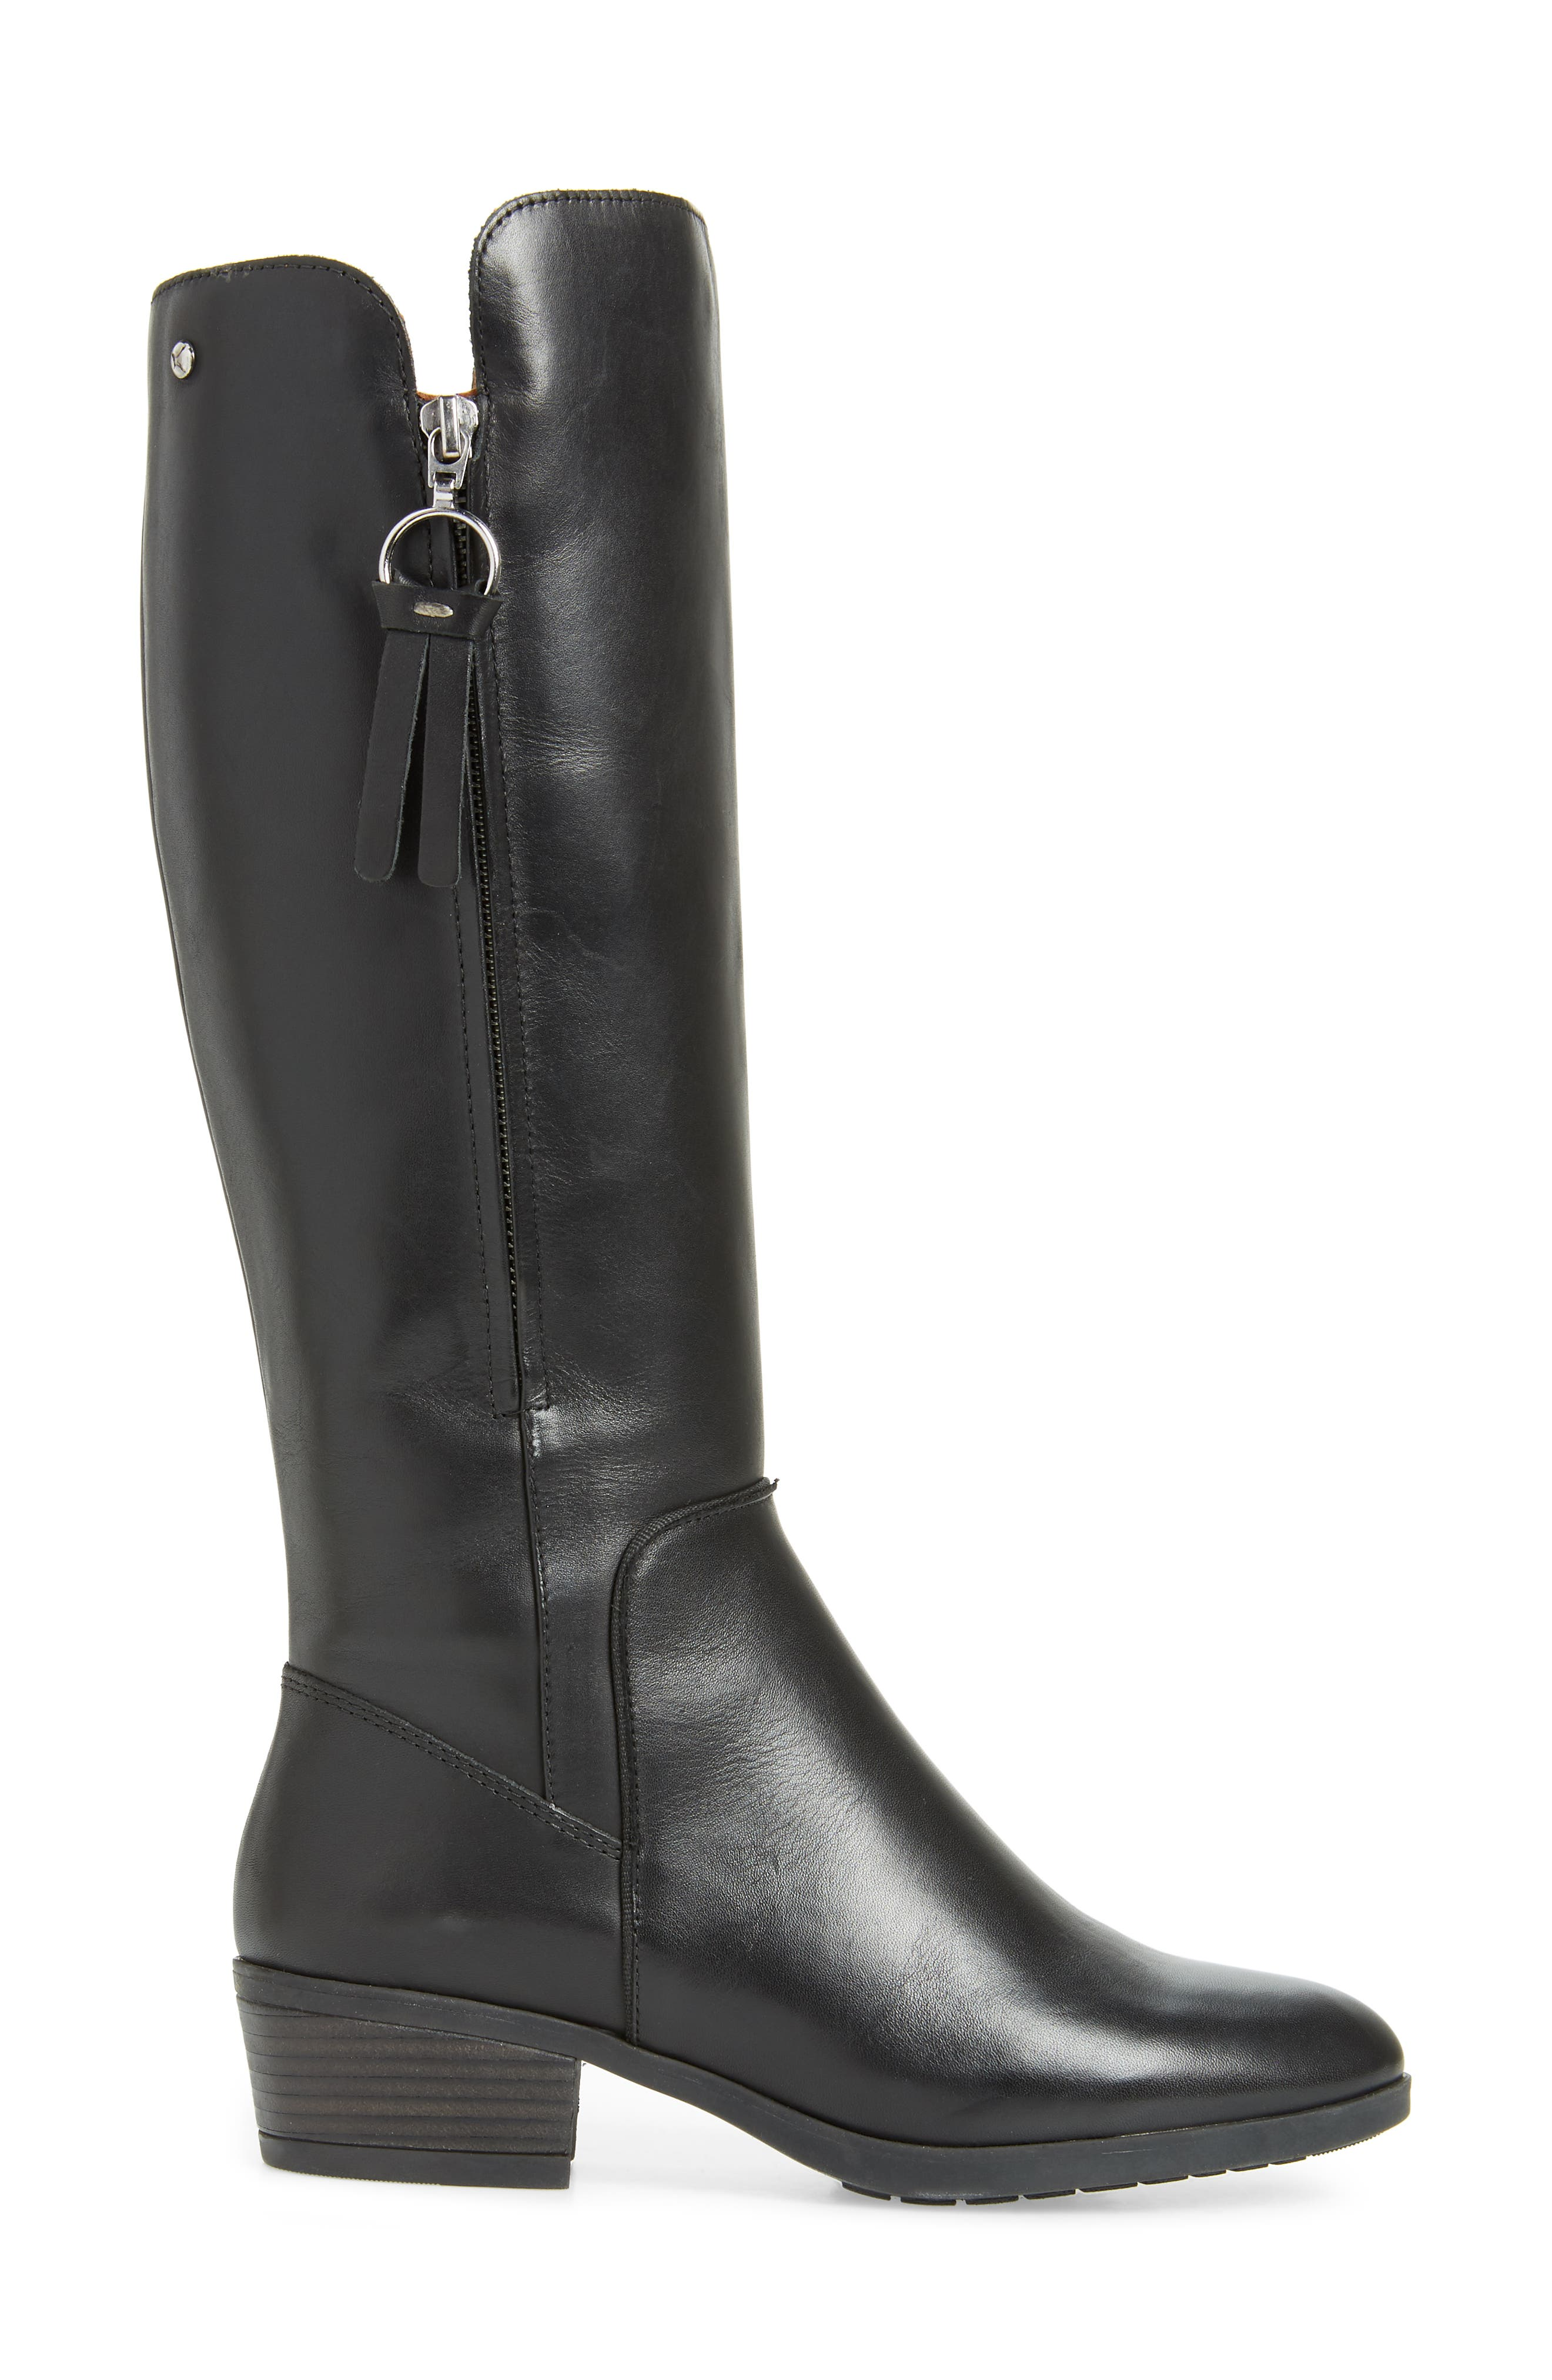 PIKOLINOS, Daroca Knee High Boot, Alternate thumbnail 3, color, BLACK LEATHER